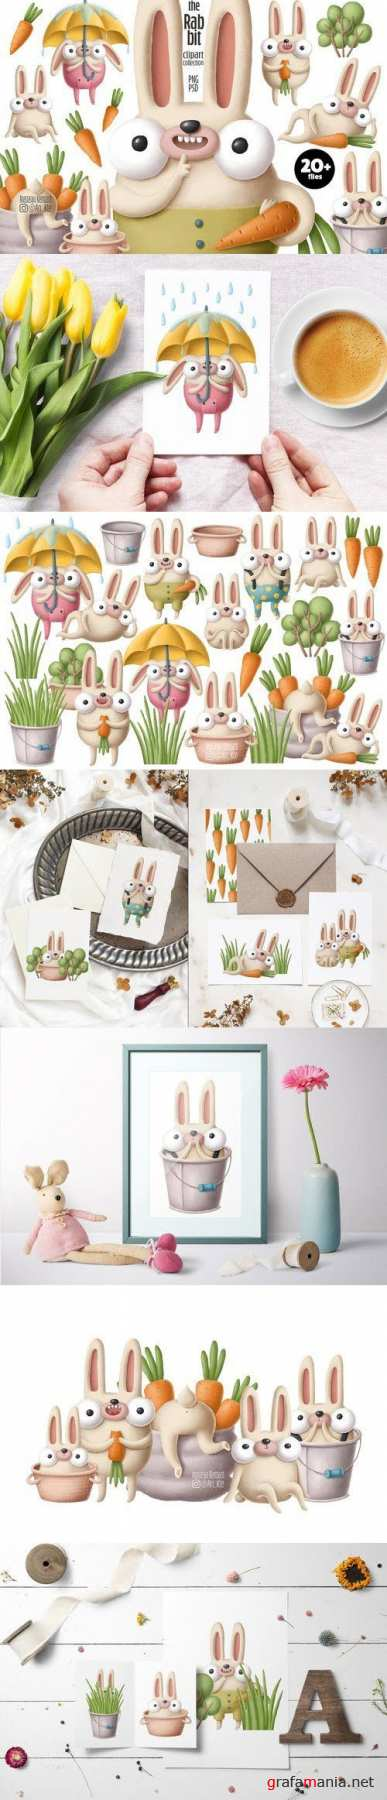 Rabbit clipart collection - 4425958